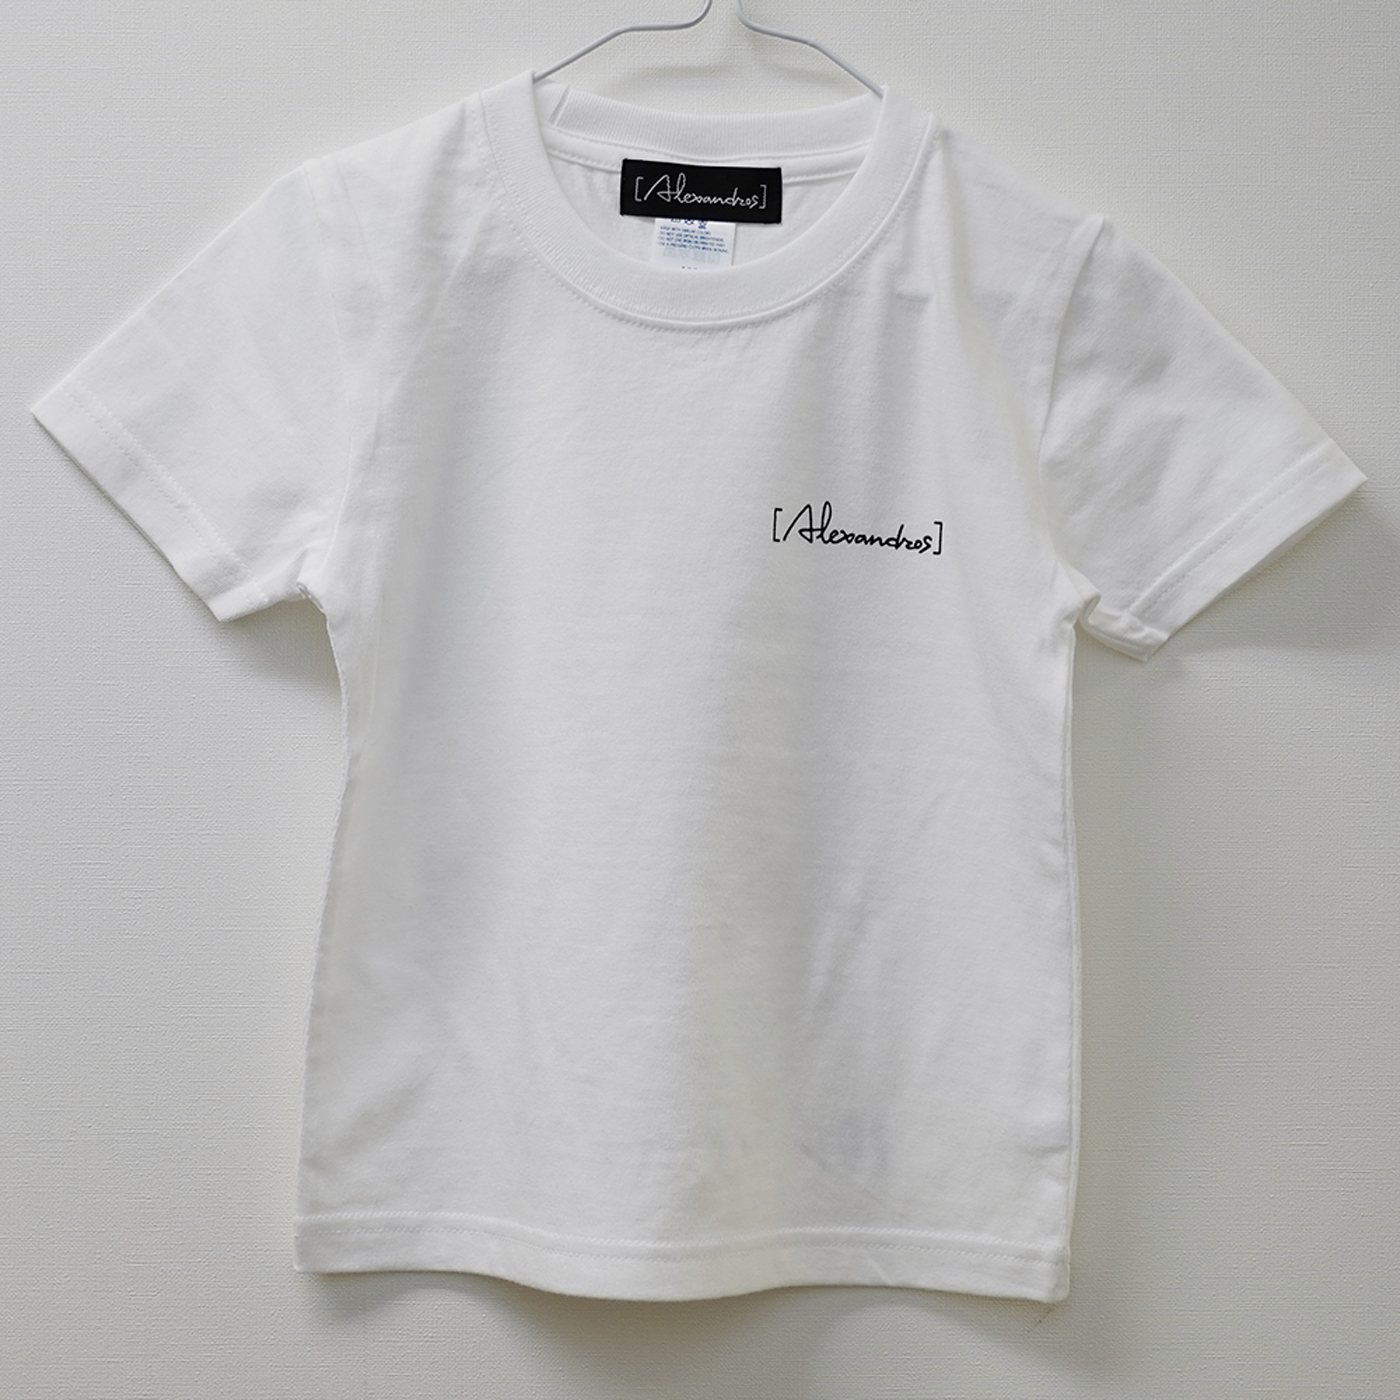 10th Anniv. Limited TEE (Kids size/WHITE)